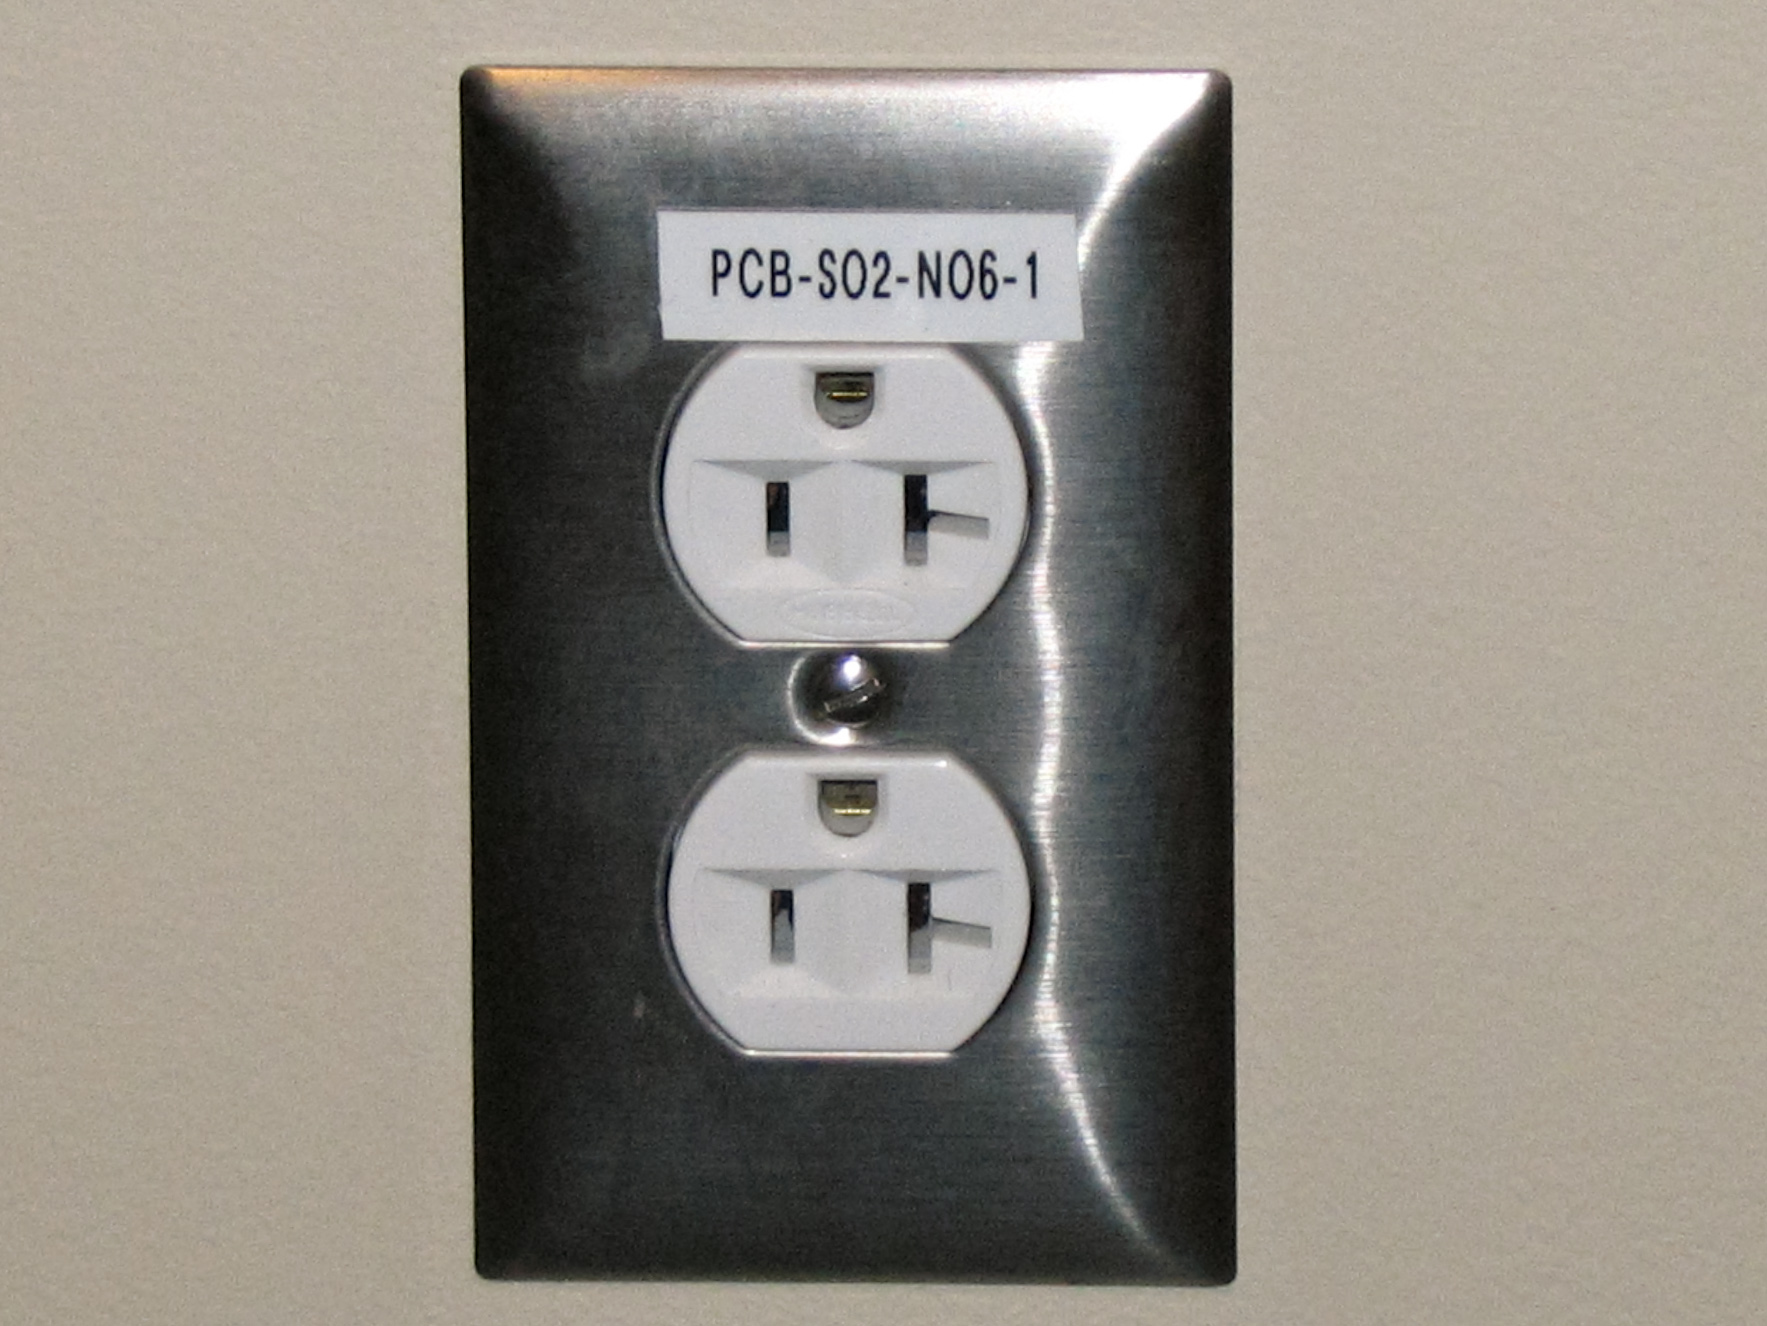 File:Electrical outlet with label.jpg - Wikimedia Commons